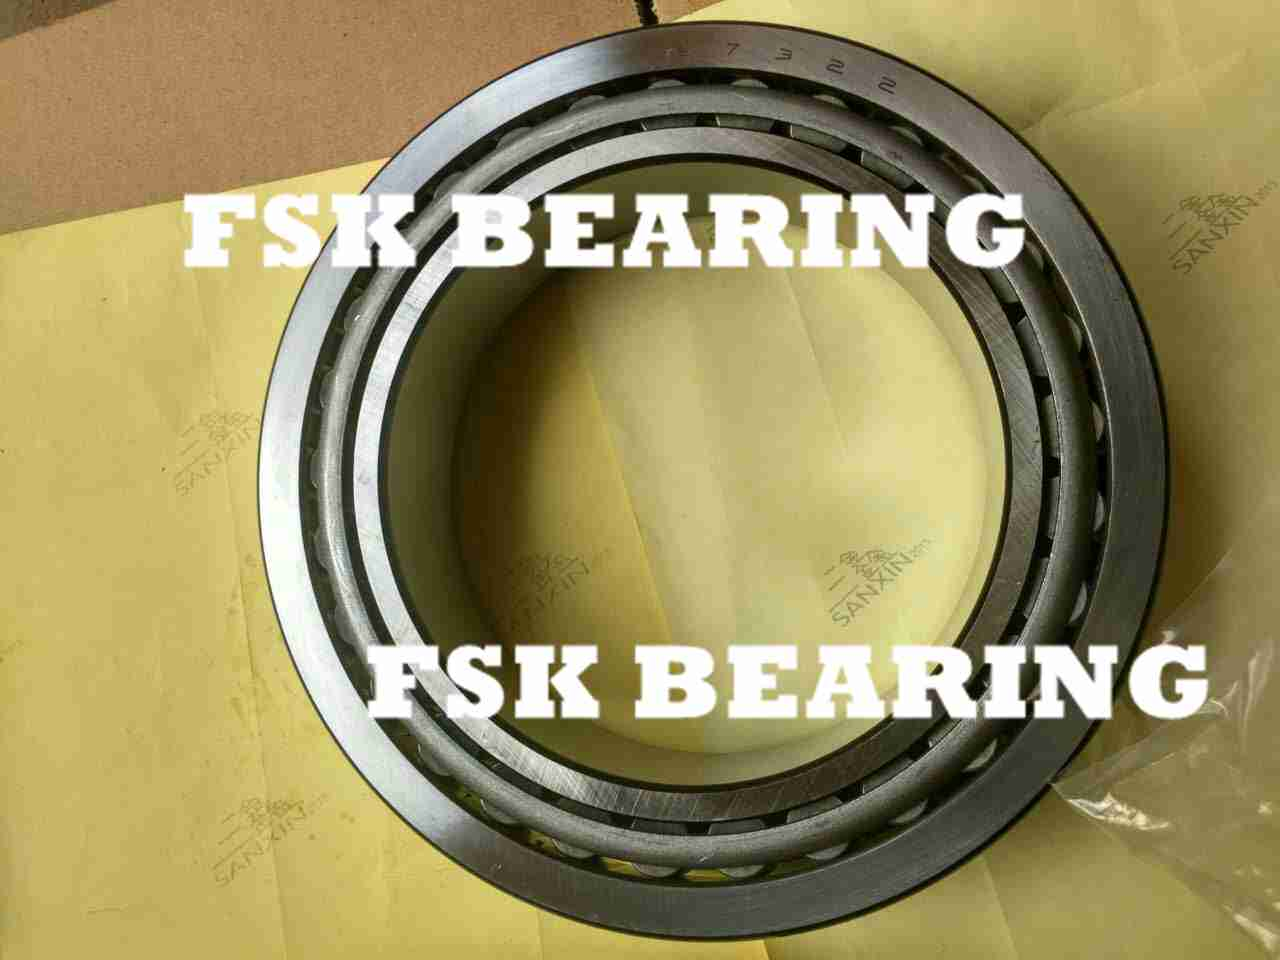 L357049/L357010 Tapered Roller Bearing 304.8x393.7x50.8mm